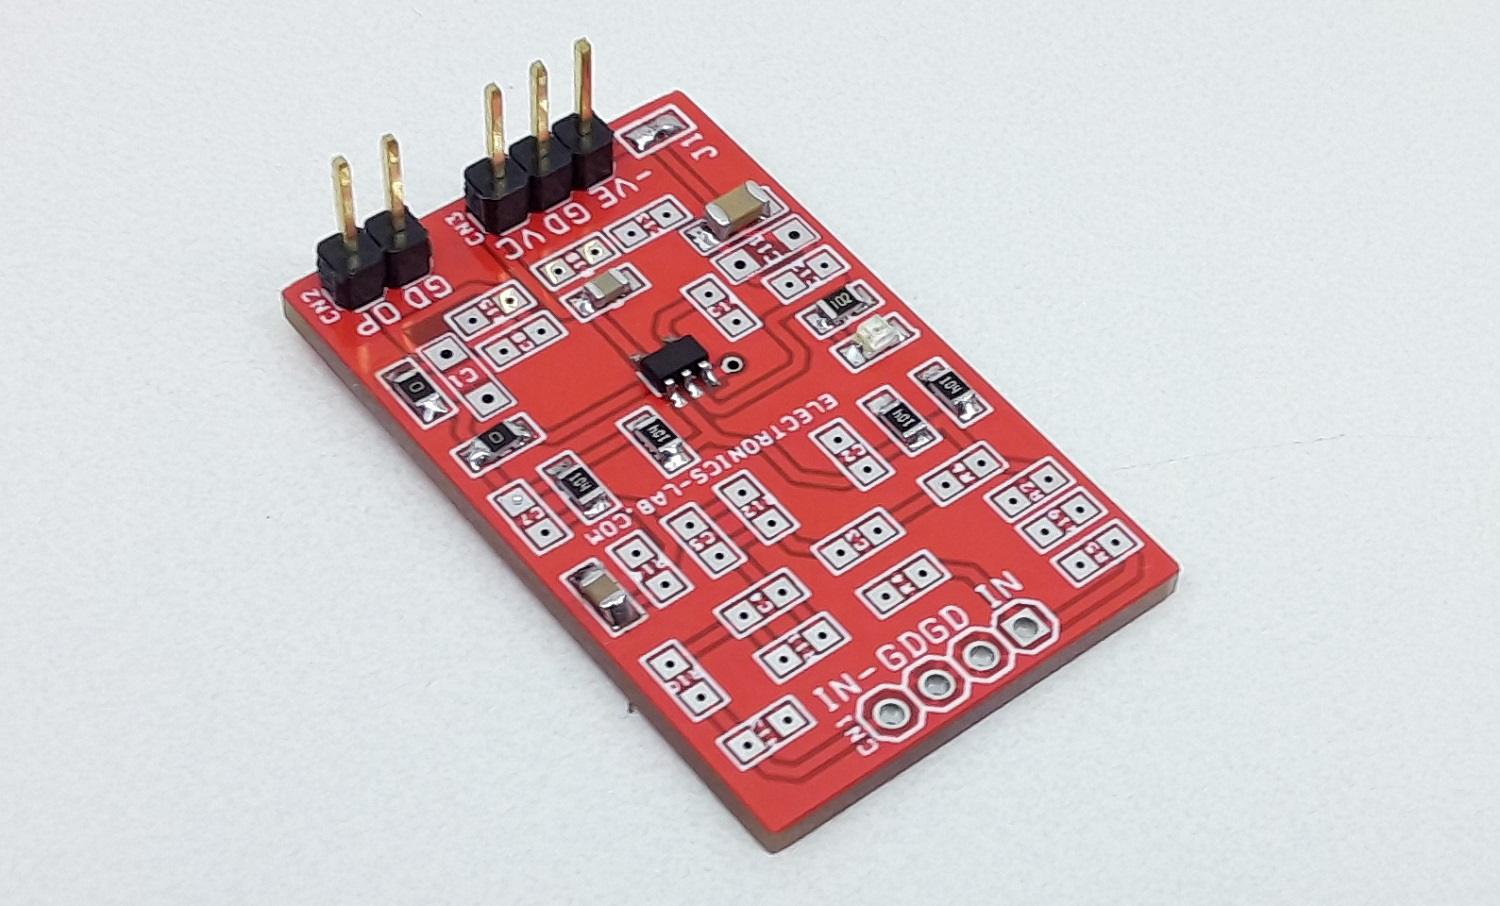 Universal OPAMP Board for SMD SOT23-5 Package